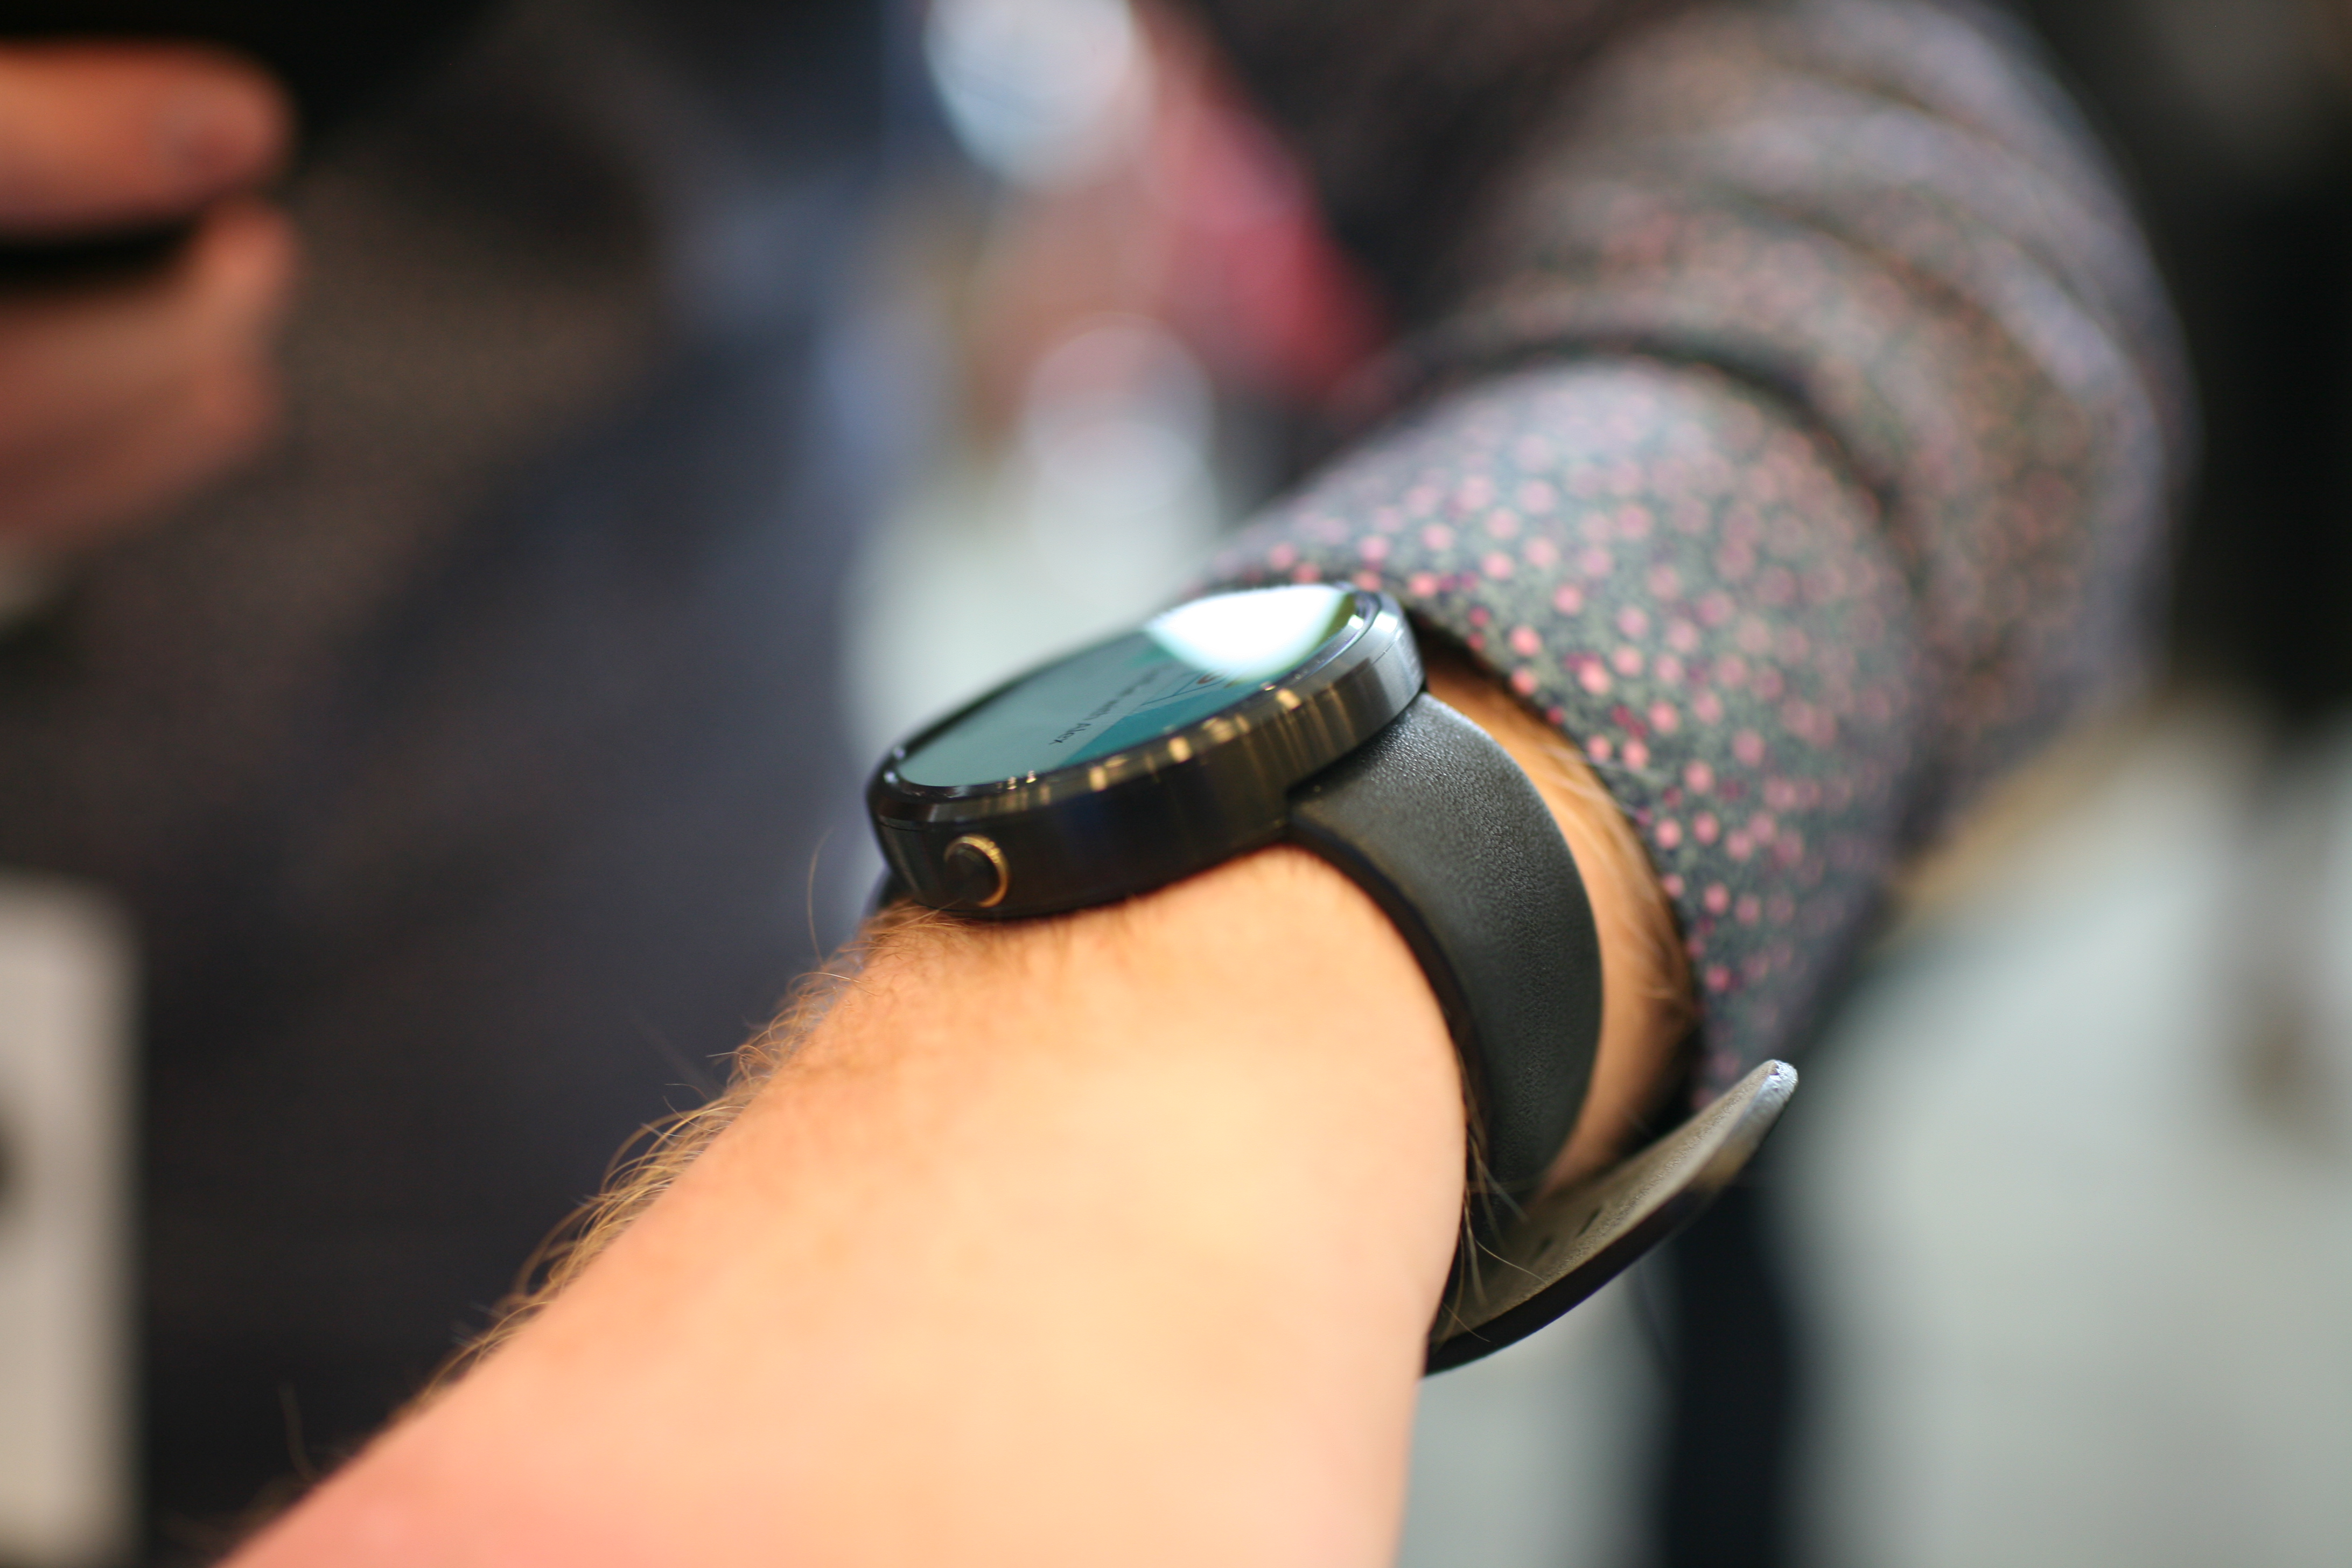 Google Issues Workaround to Fix Android Wear Bug